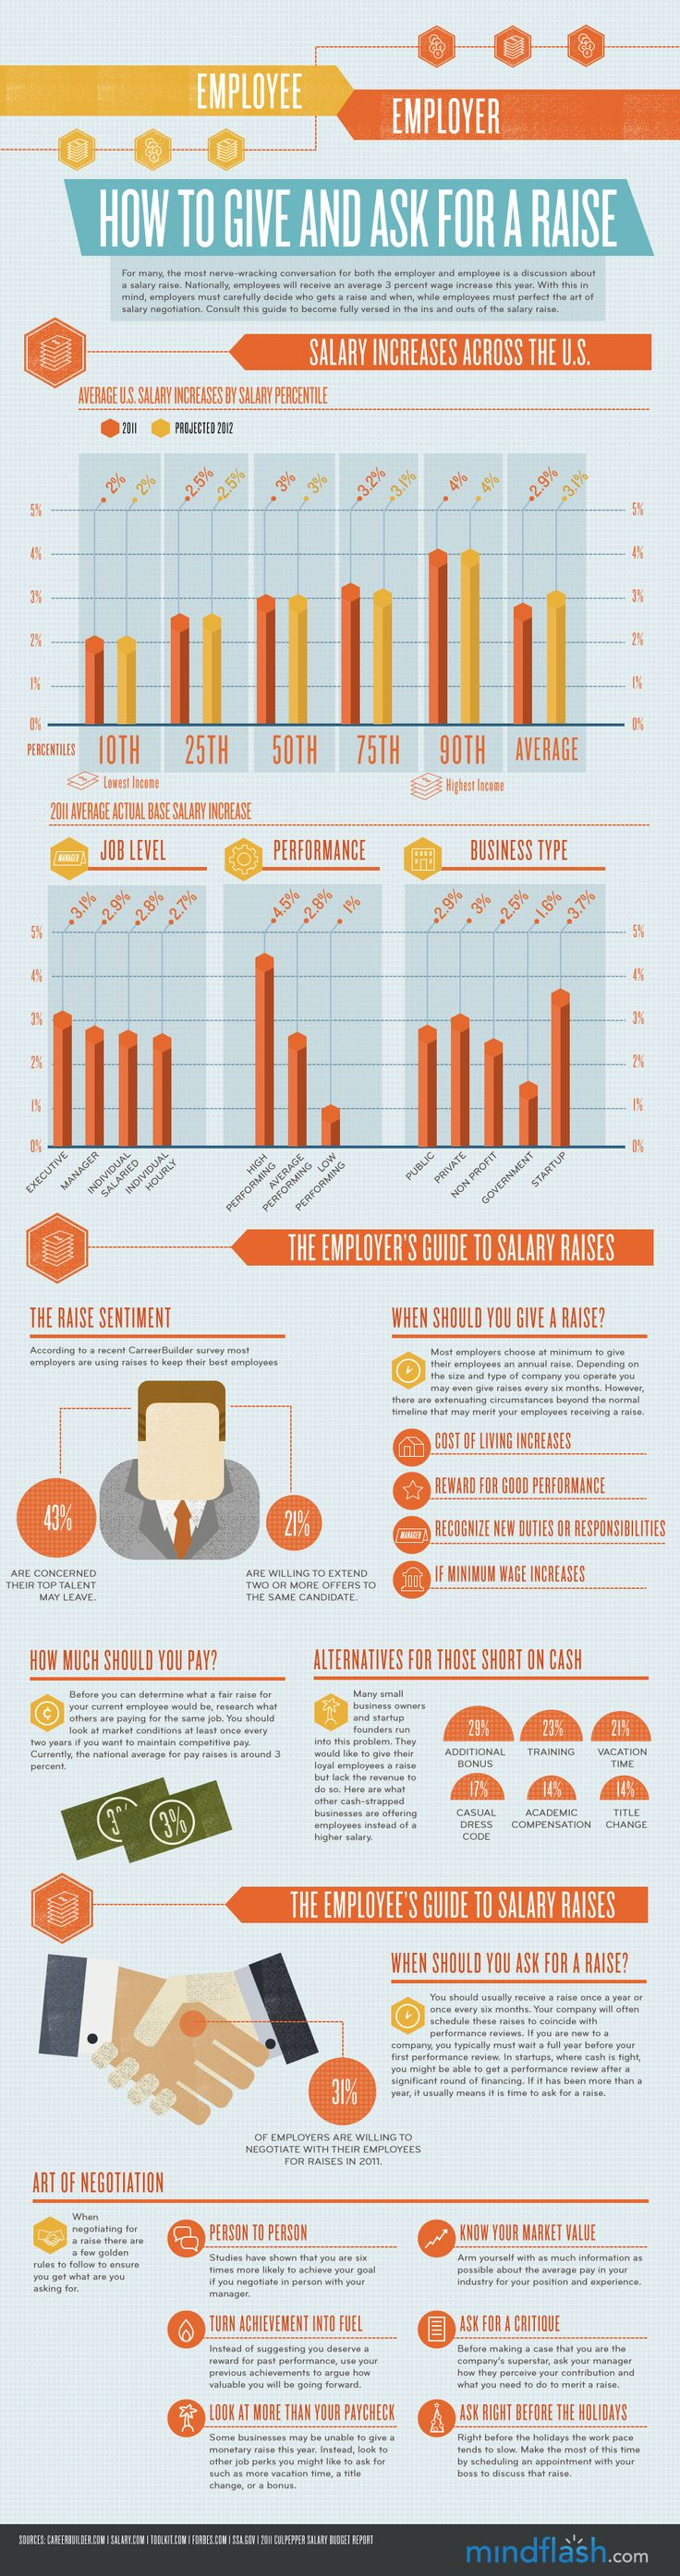 How To Ask For And Give A Raise [infographic]